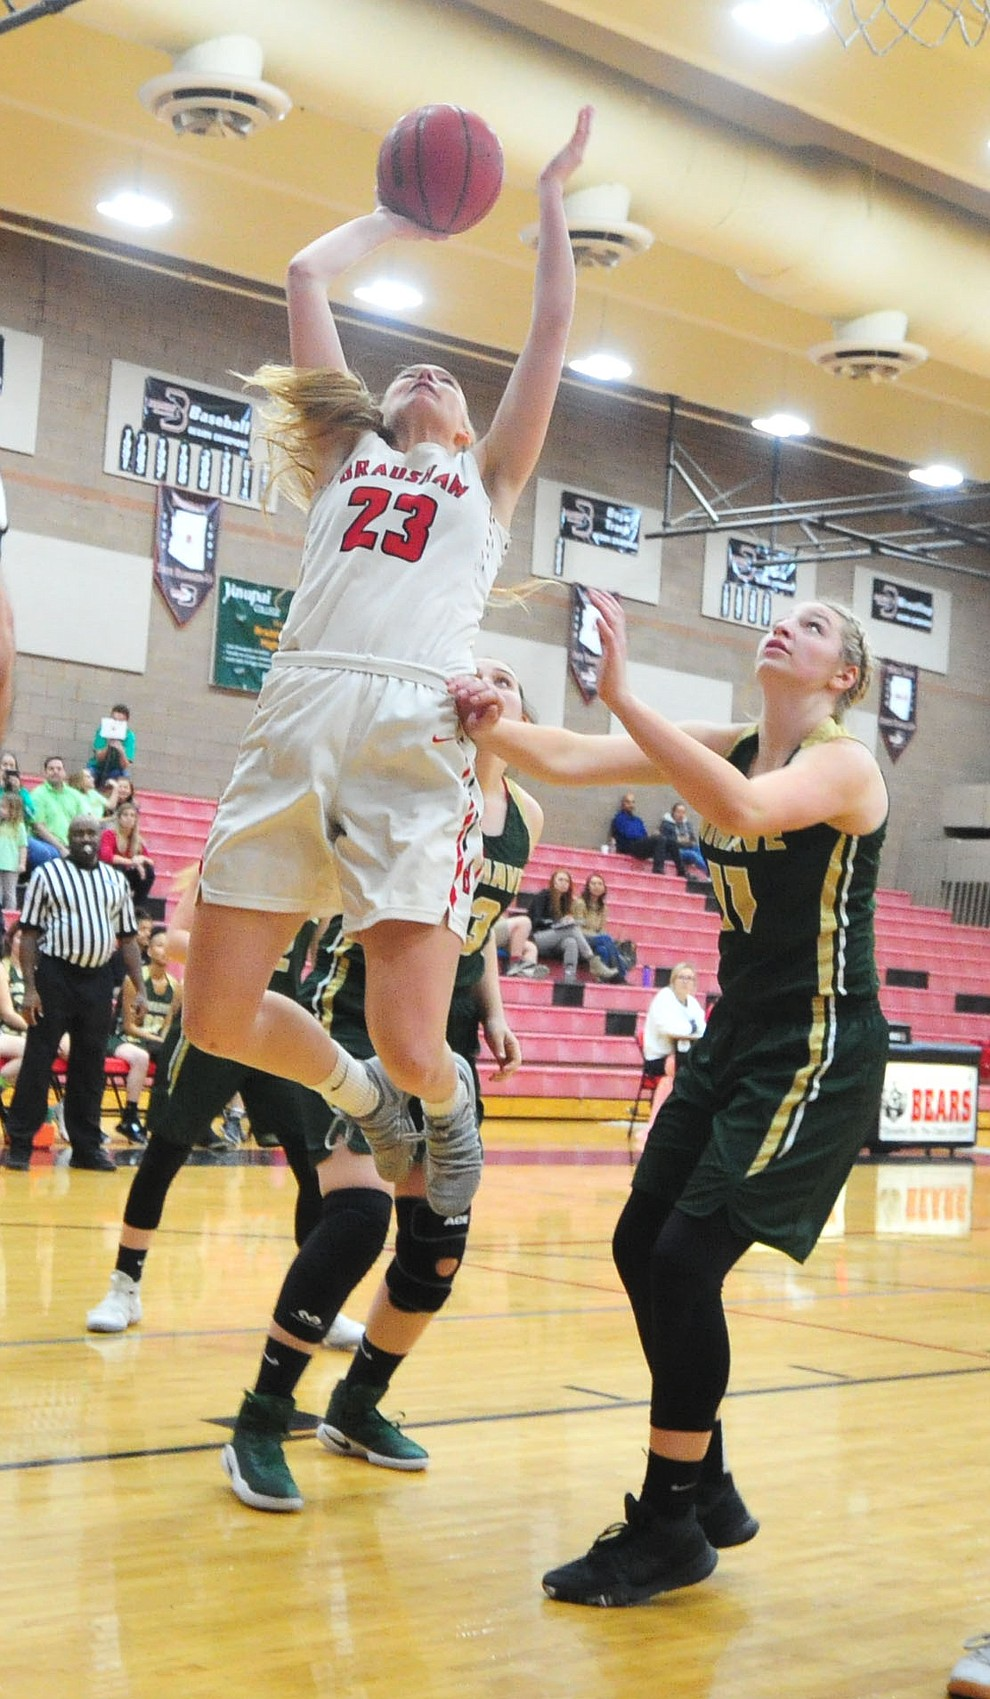 Bradshaw Mountain's Rylee Bundrick sends up a shot as the Bears host the Mohave Thunderbirds in a basketball matchup Friday night in Prescott Valley. (Les Stukenberg/Courier).